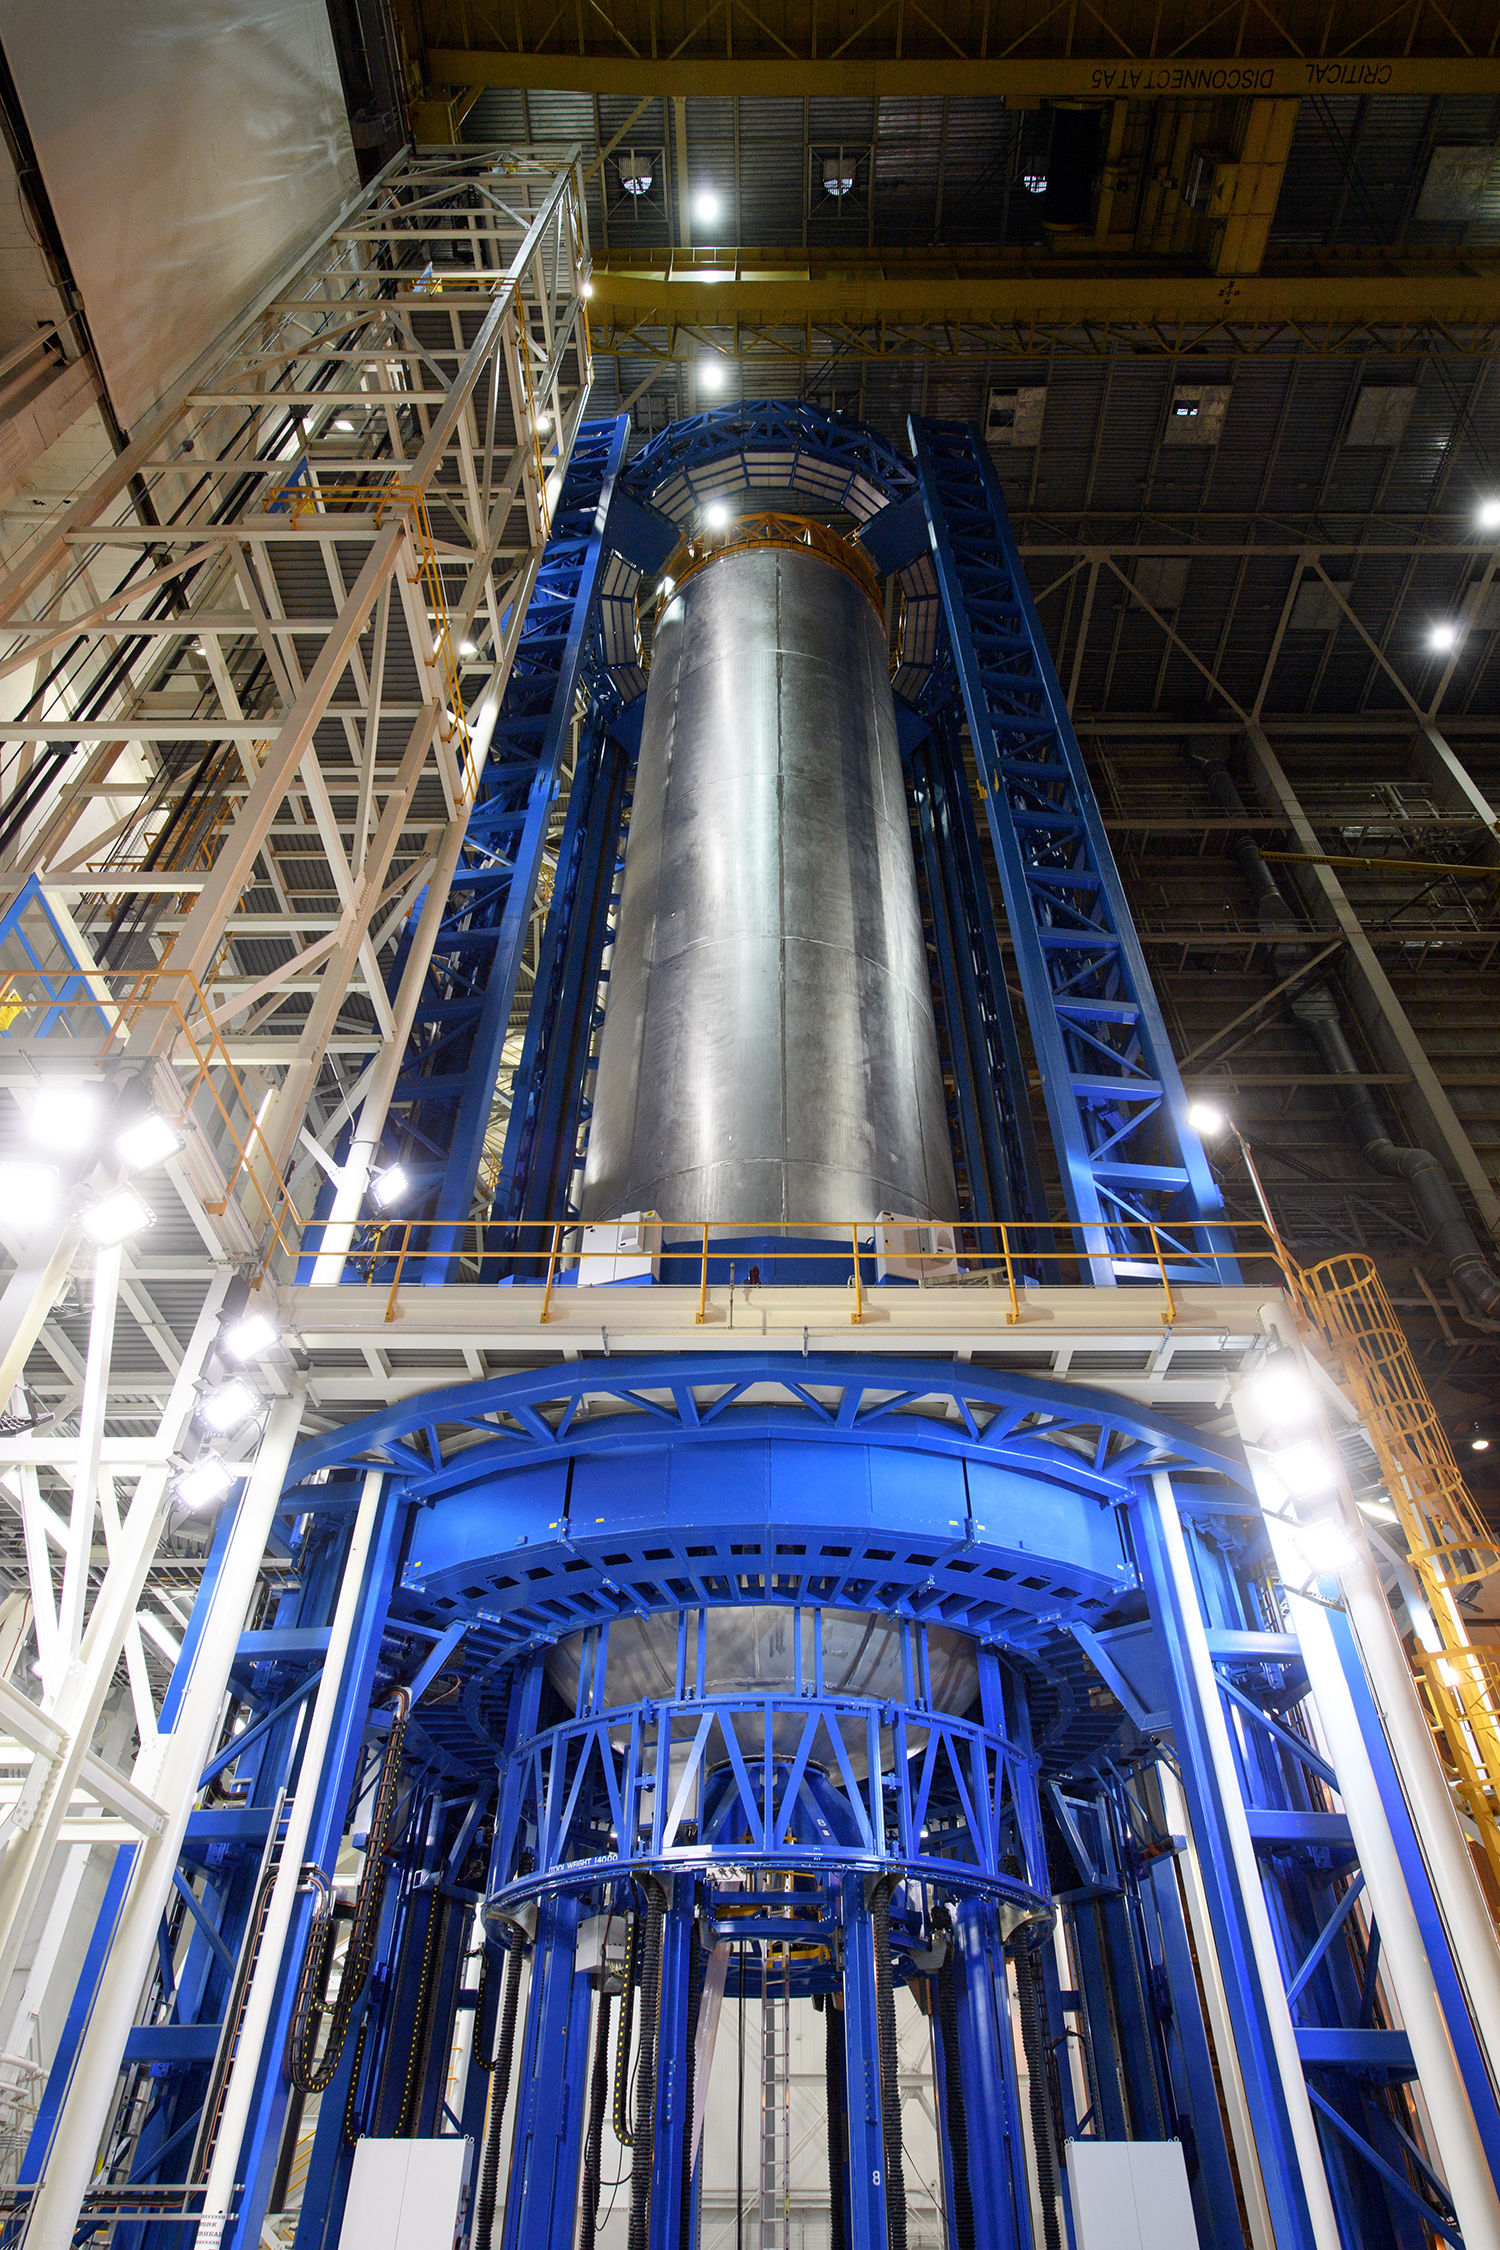 Boeing completes welding on a liquid hydrogen fuel tank for the SLS core stage for EM-1 mission. Image Credit: NASA/Business Wire